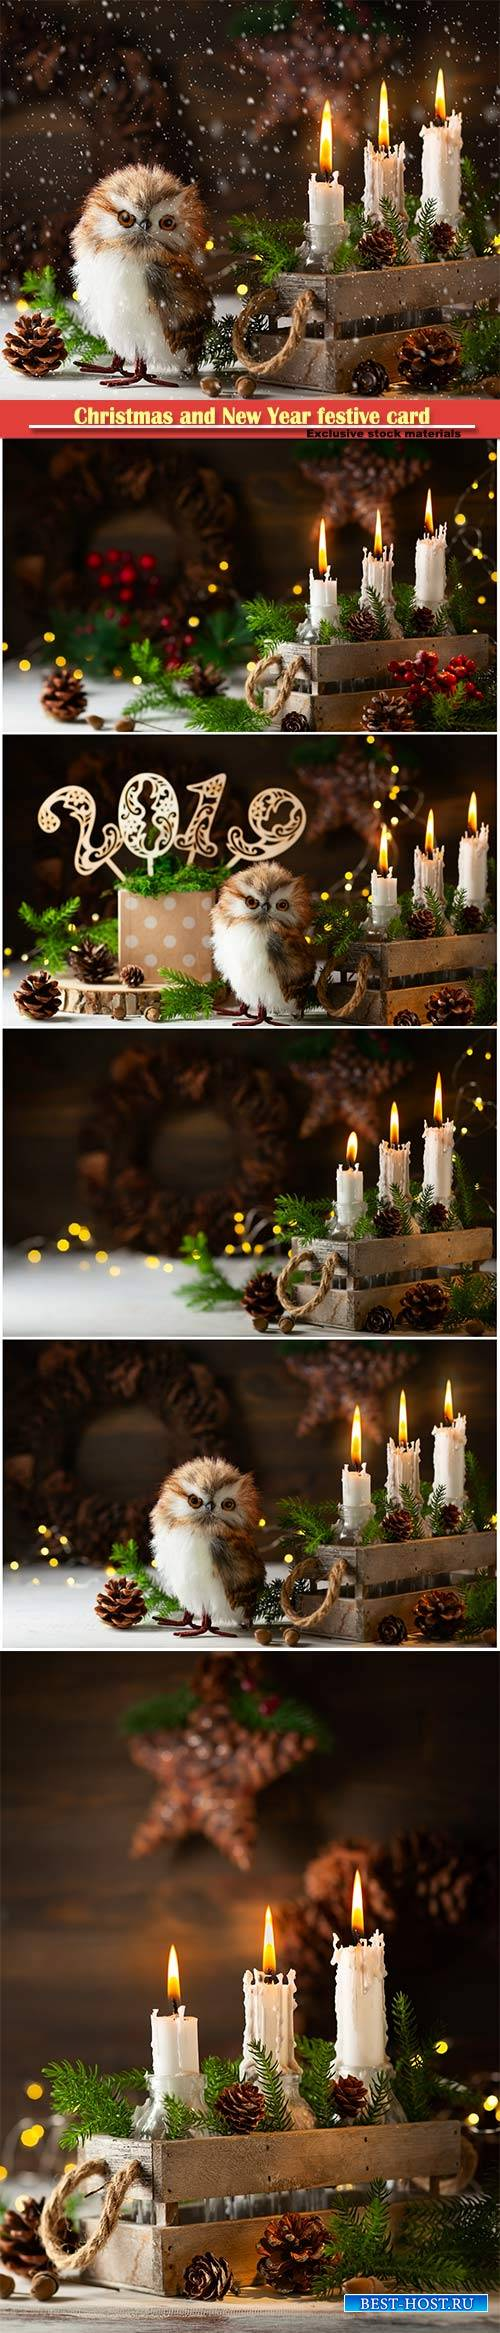 Christmas and New Year festive card, candles, owl, pine cones and fir branc ...